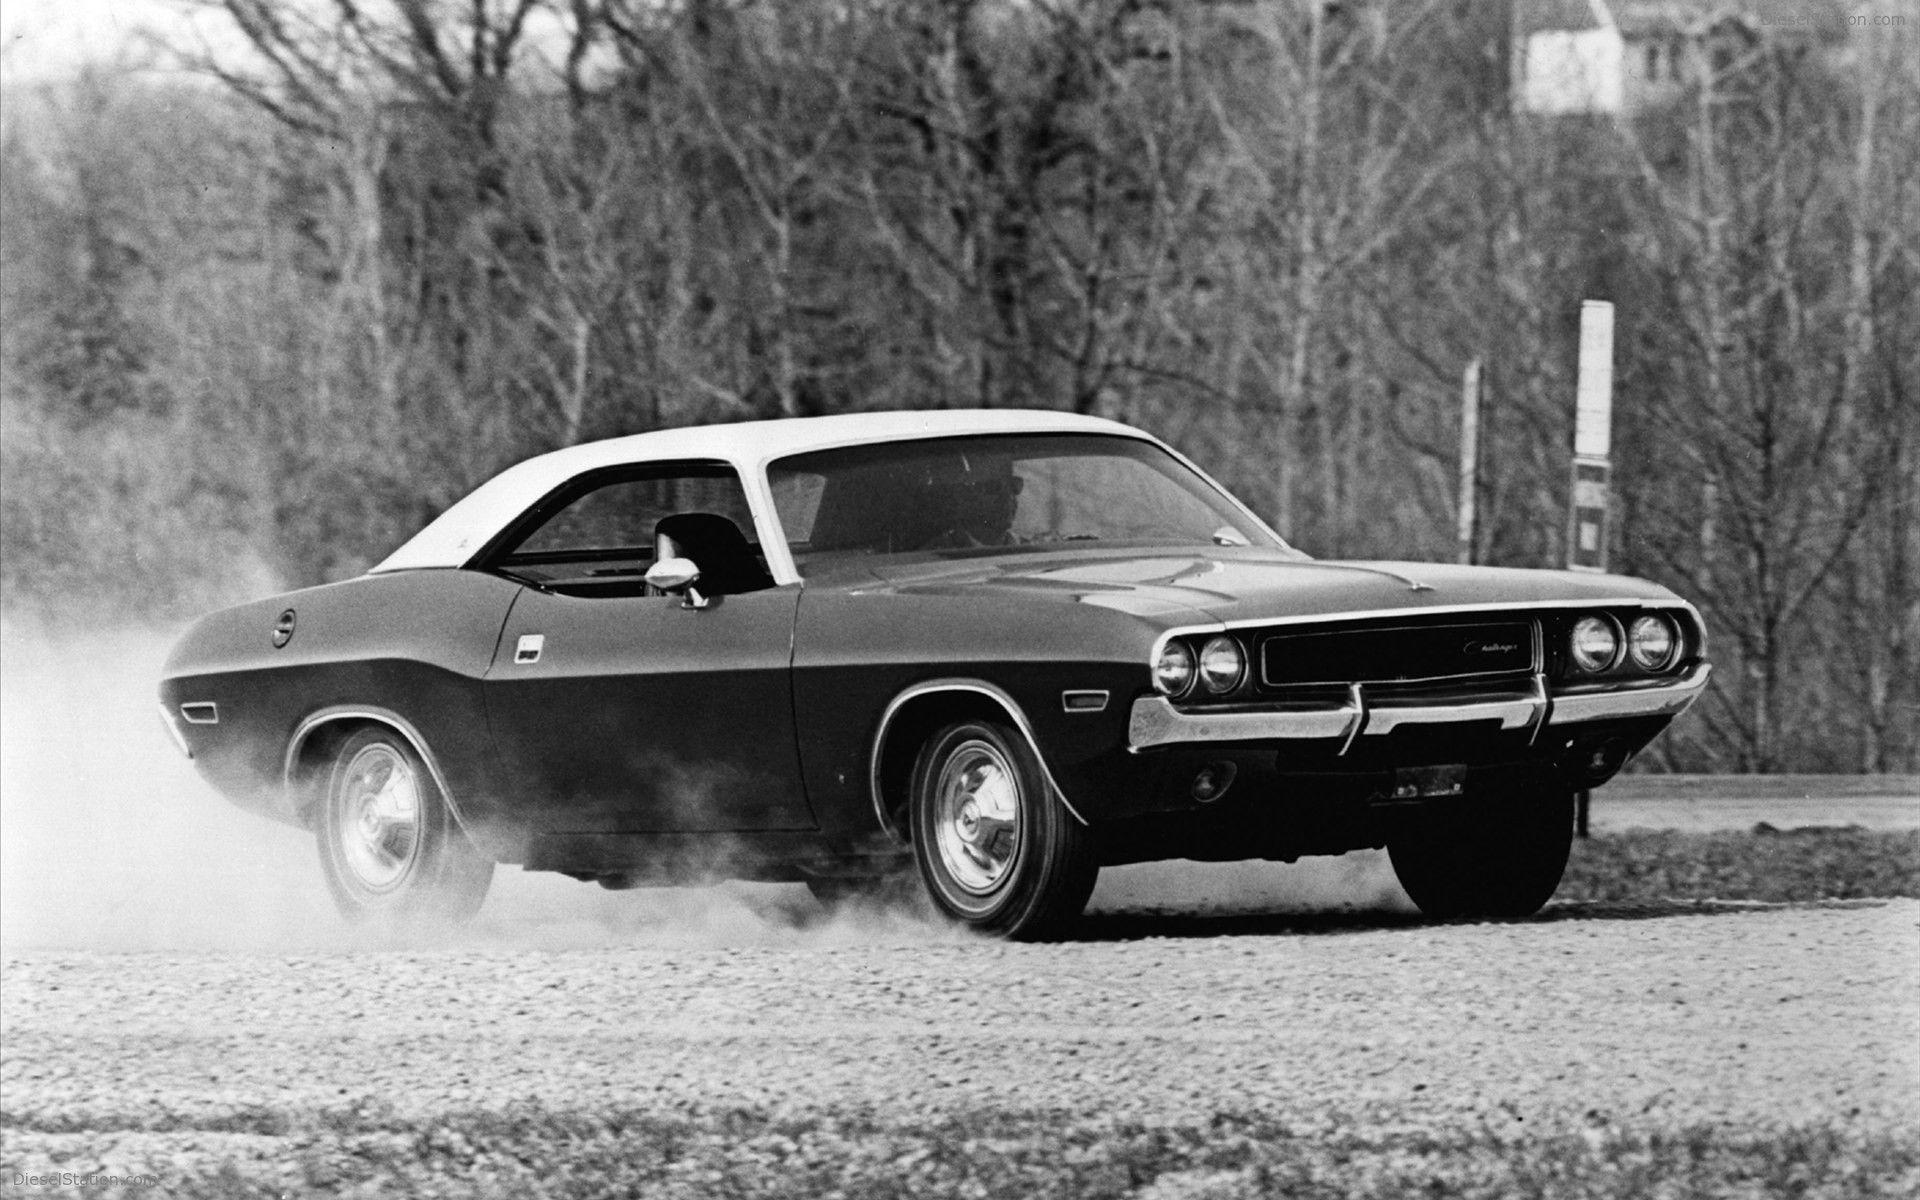 Car Wallpaper High Resolution: Muscle Cars Wallpapers High Resolution